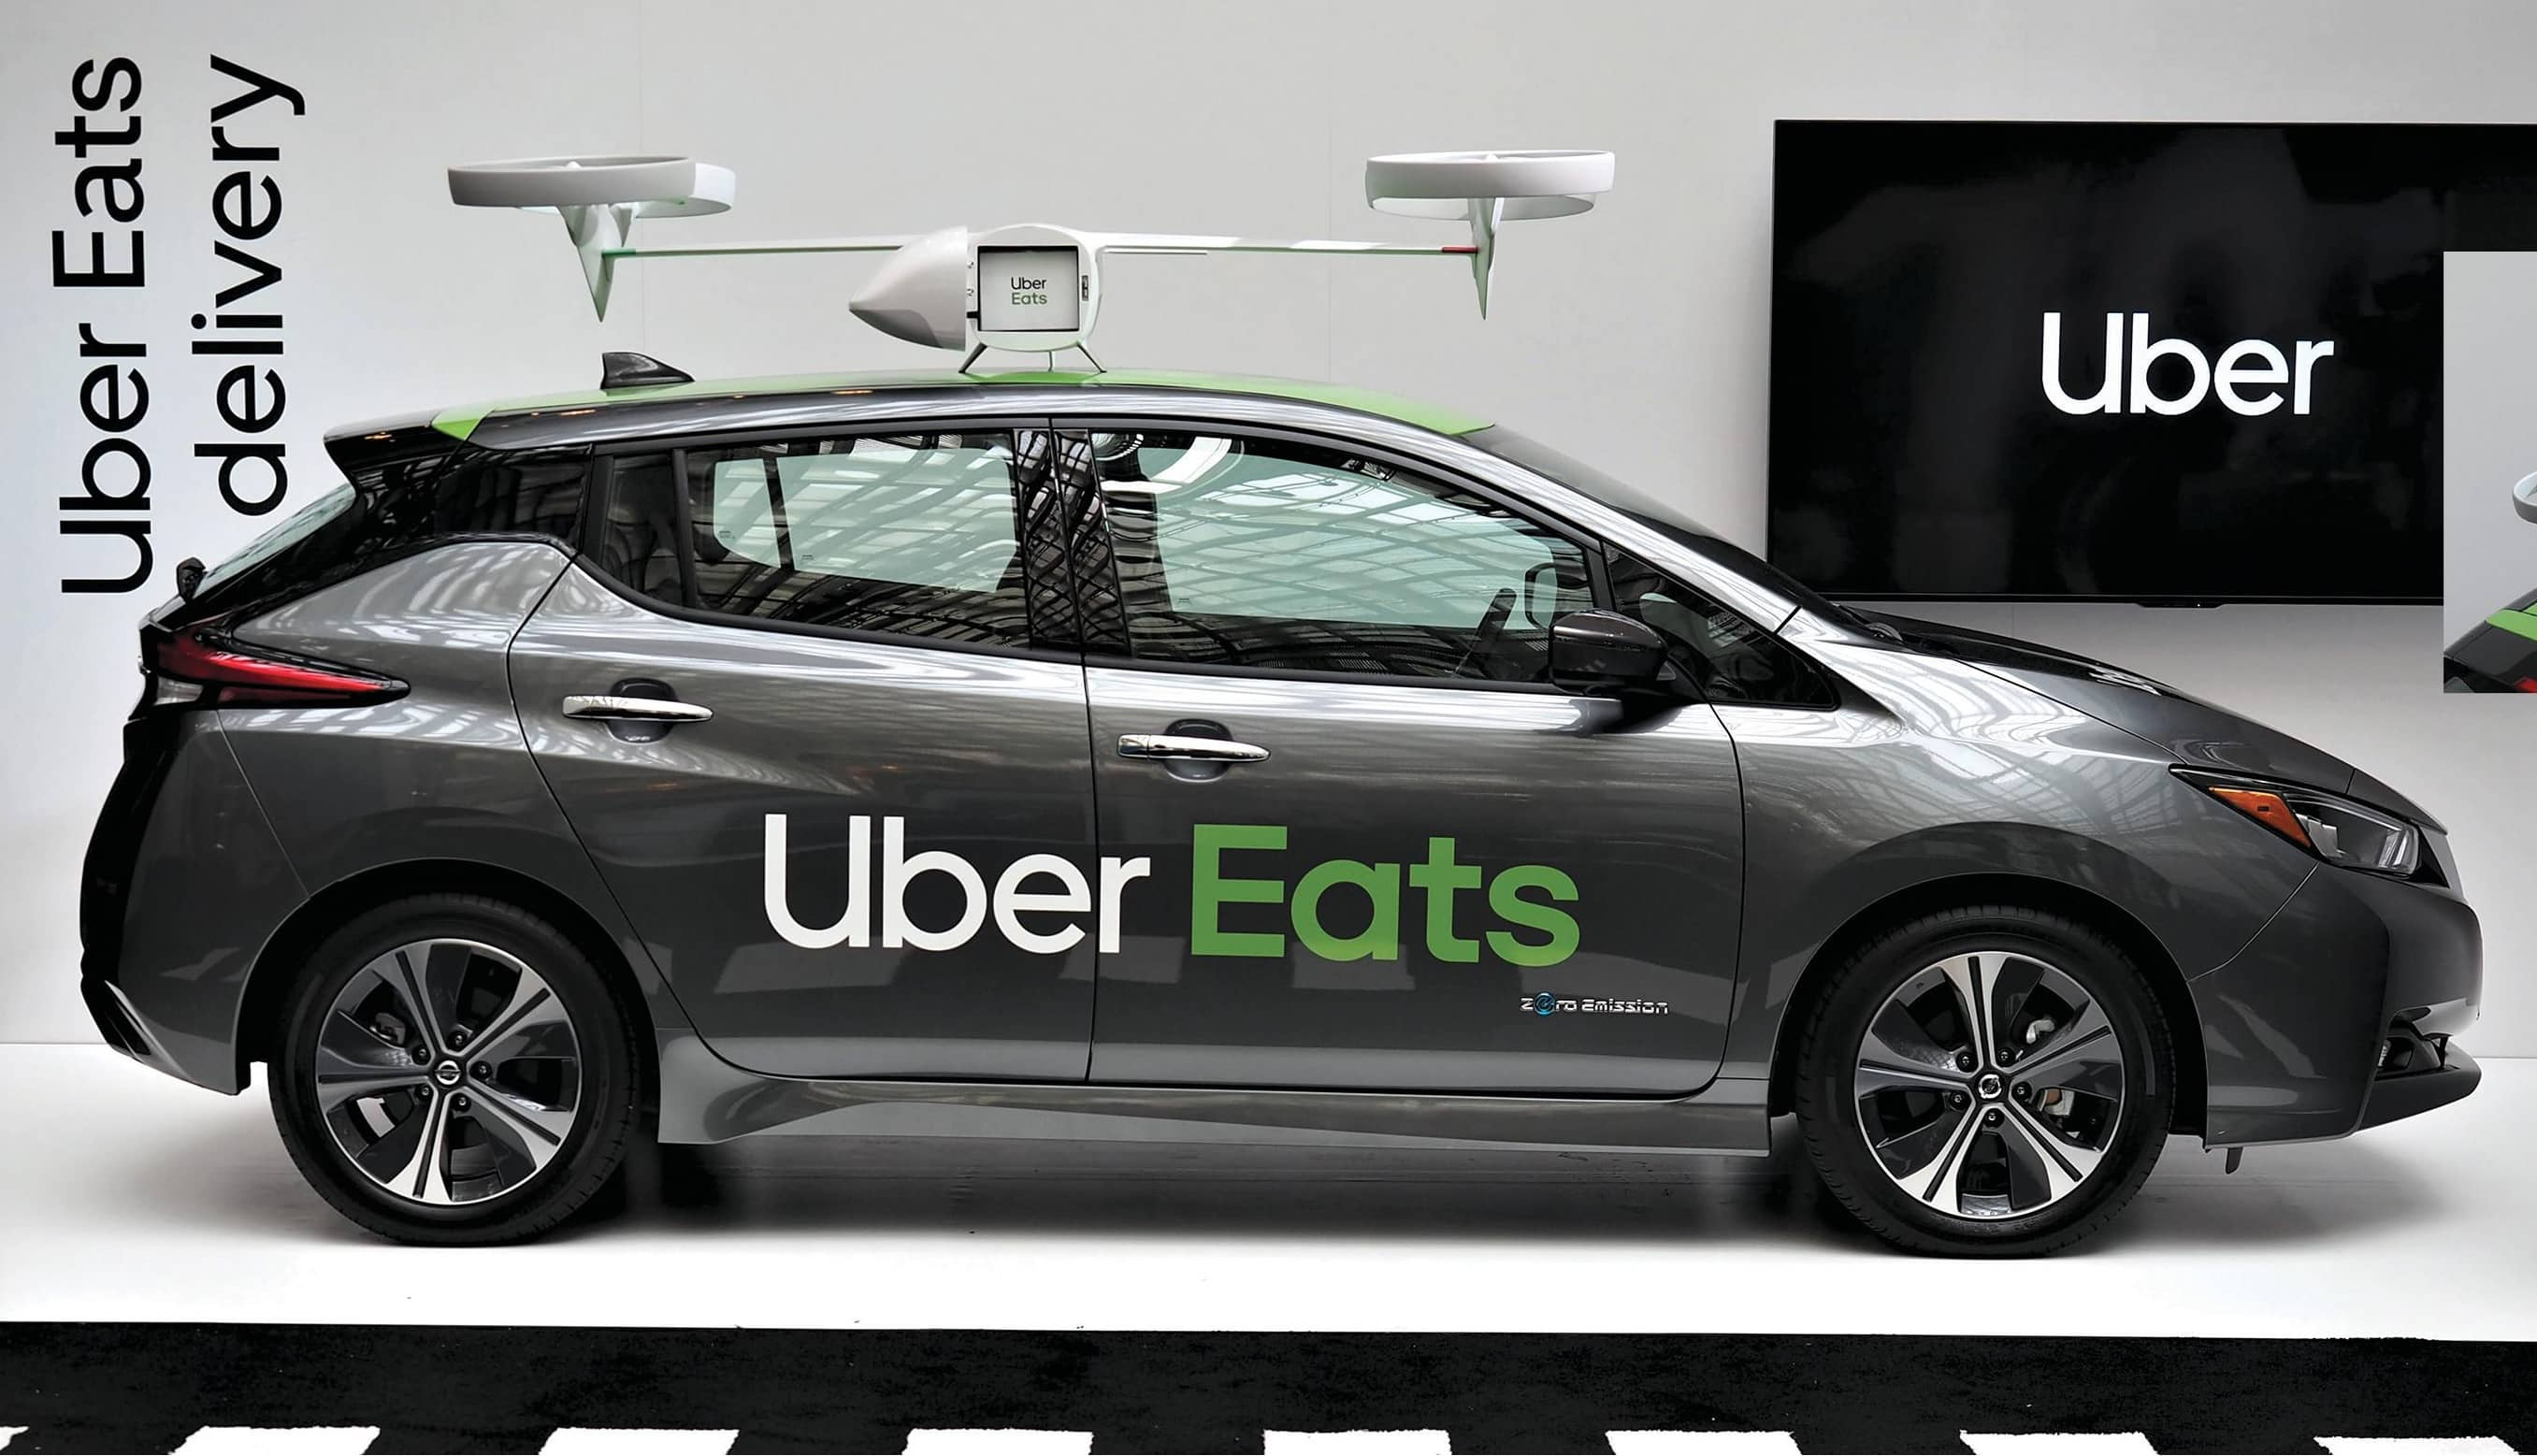 Can Uber Elevate Deliver Your Fries Hot?